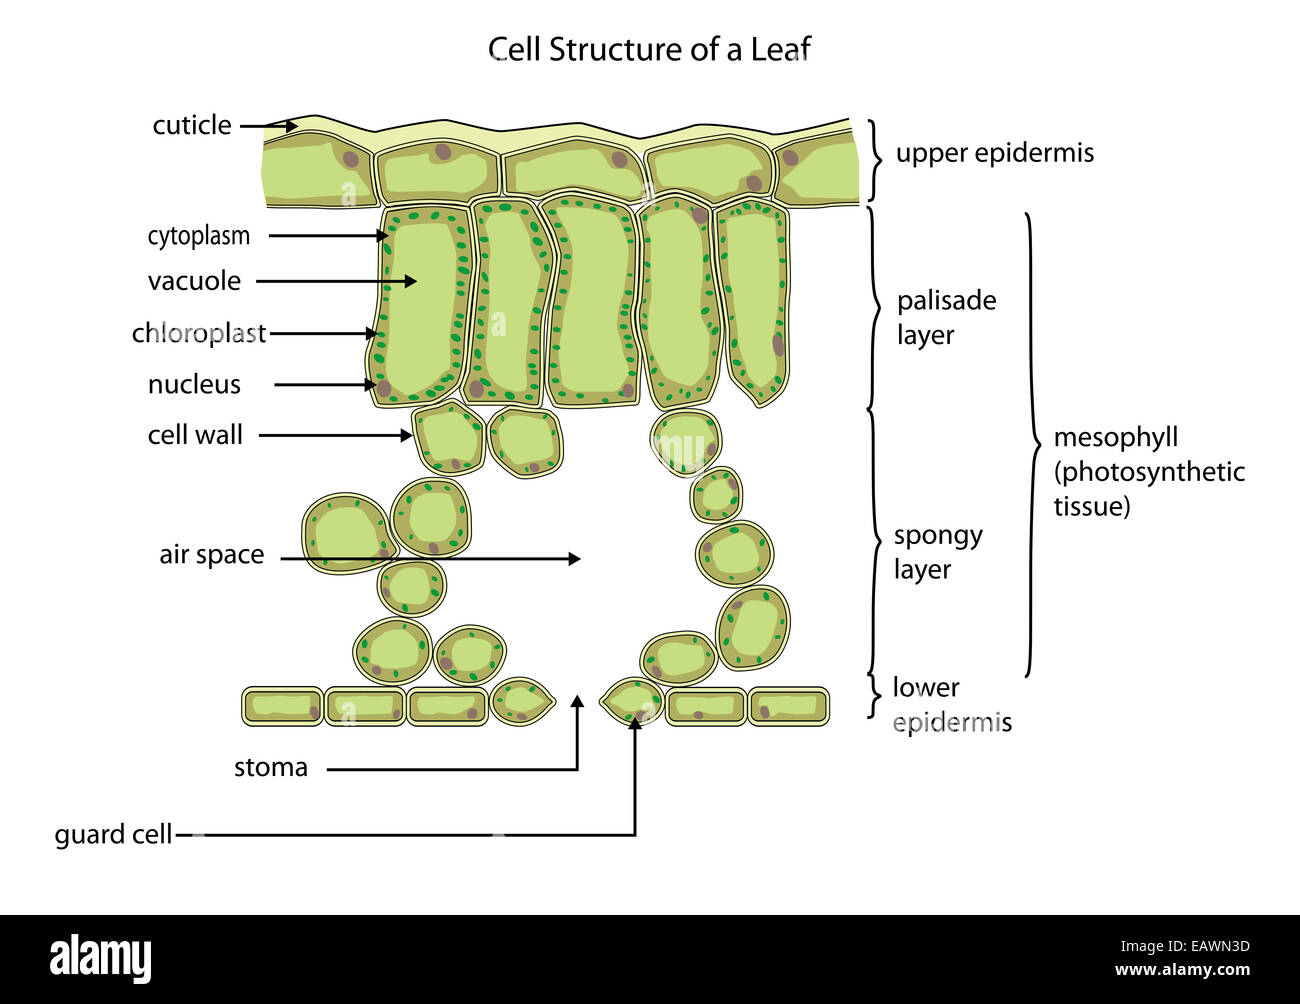 Section through a typical leaf showing the cell structure - Stock Image